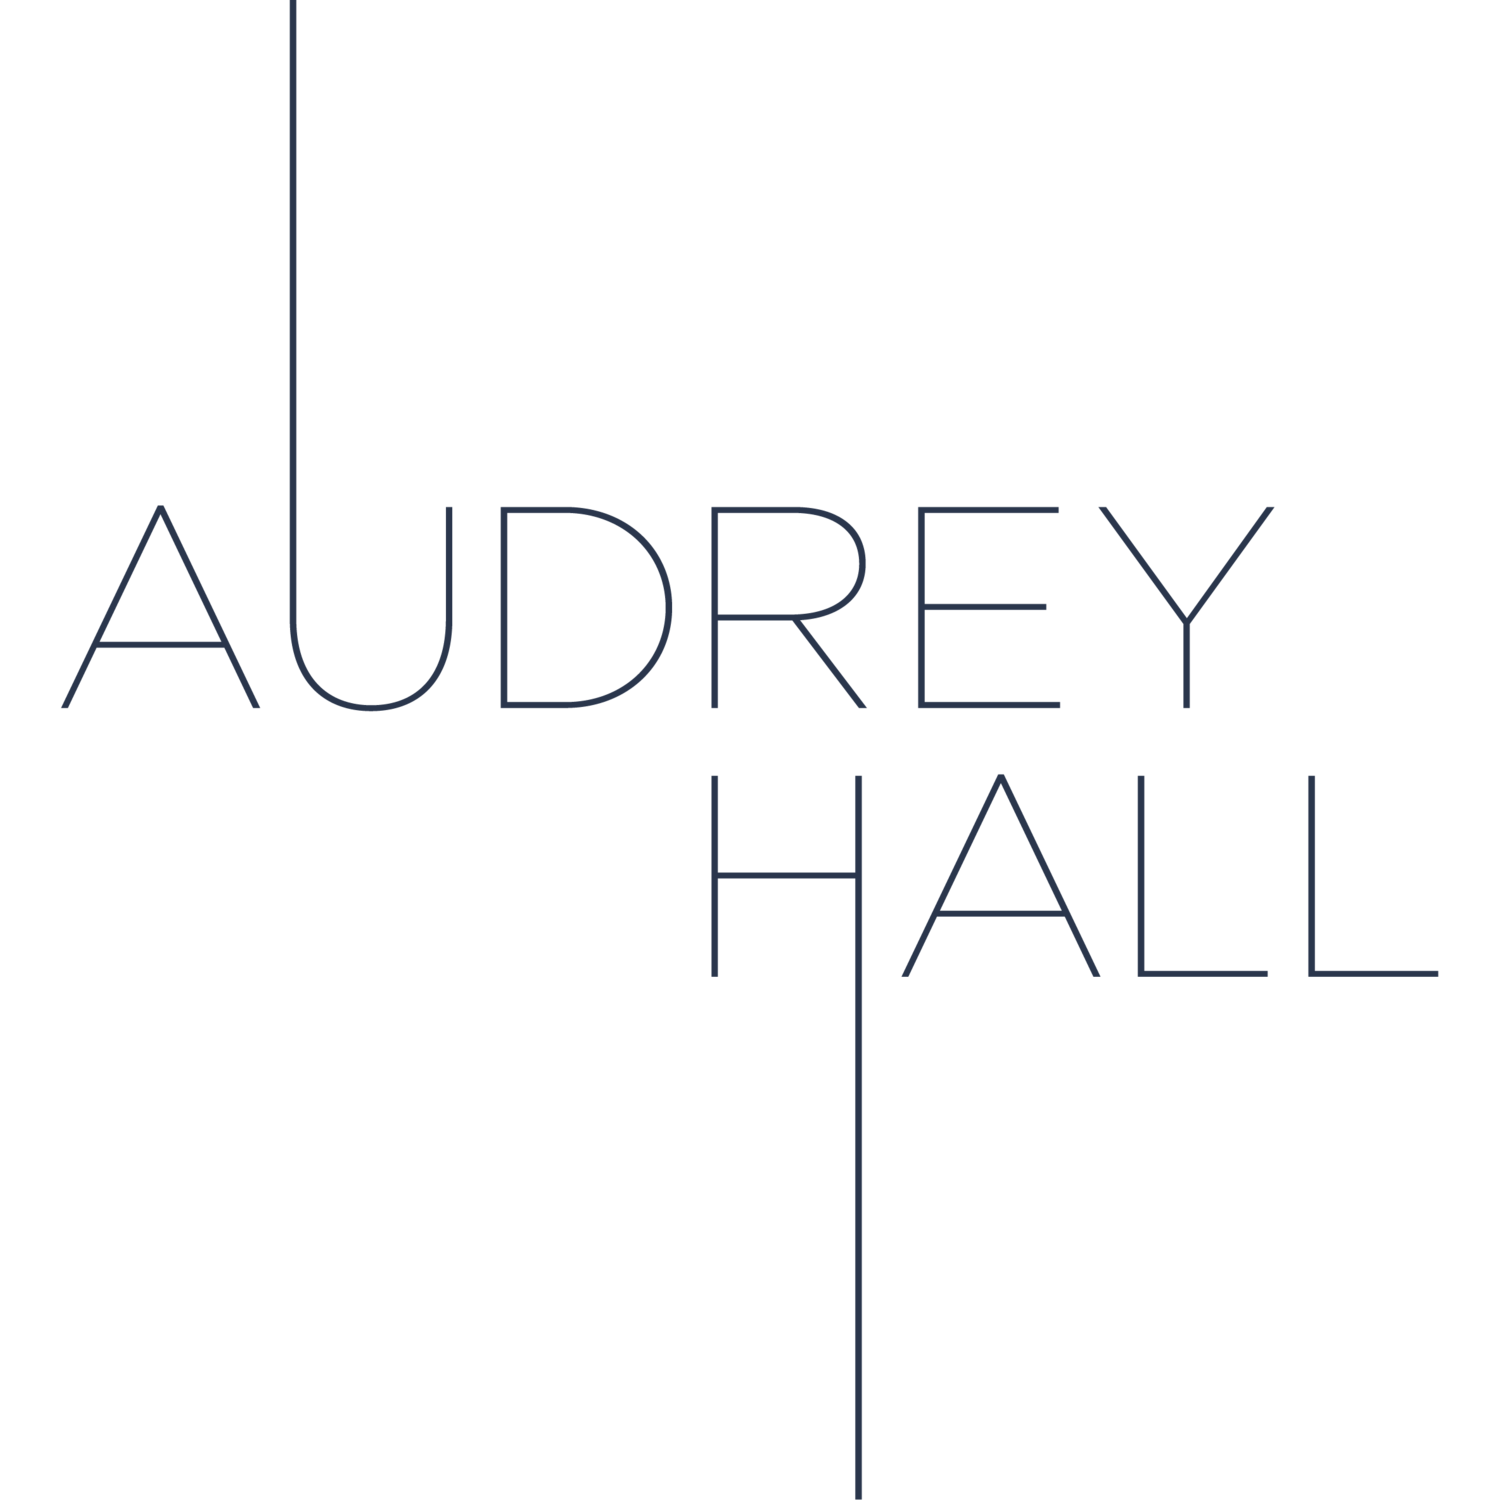 Audrey Hall